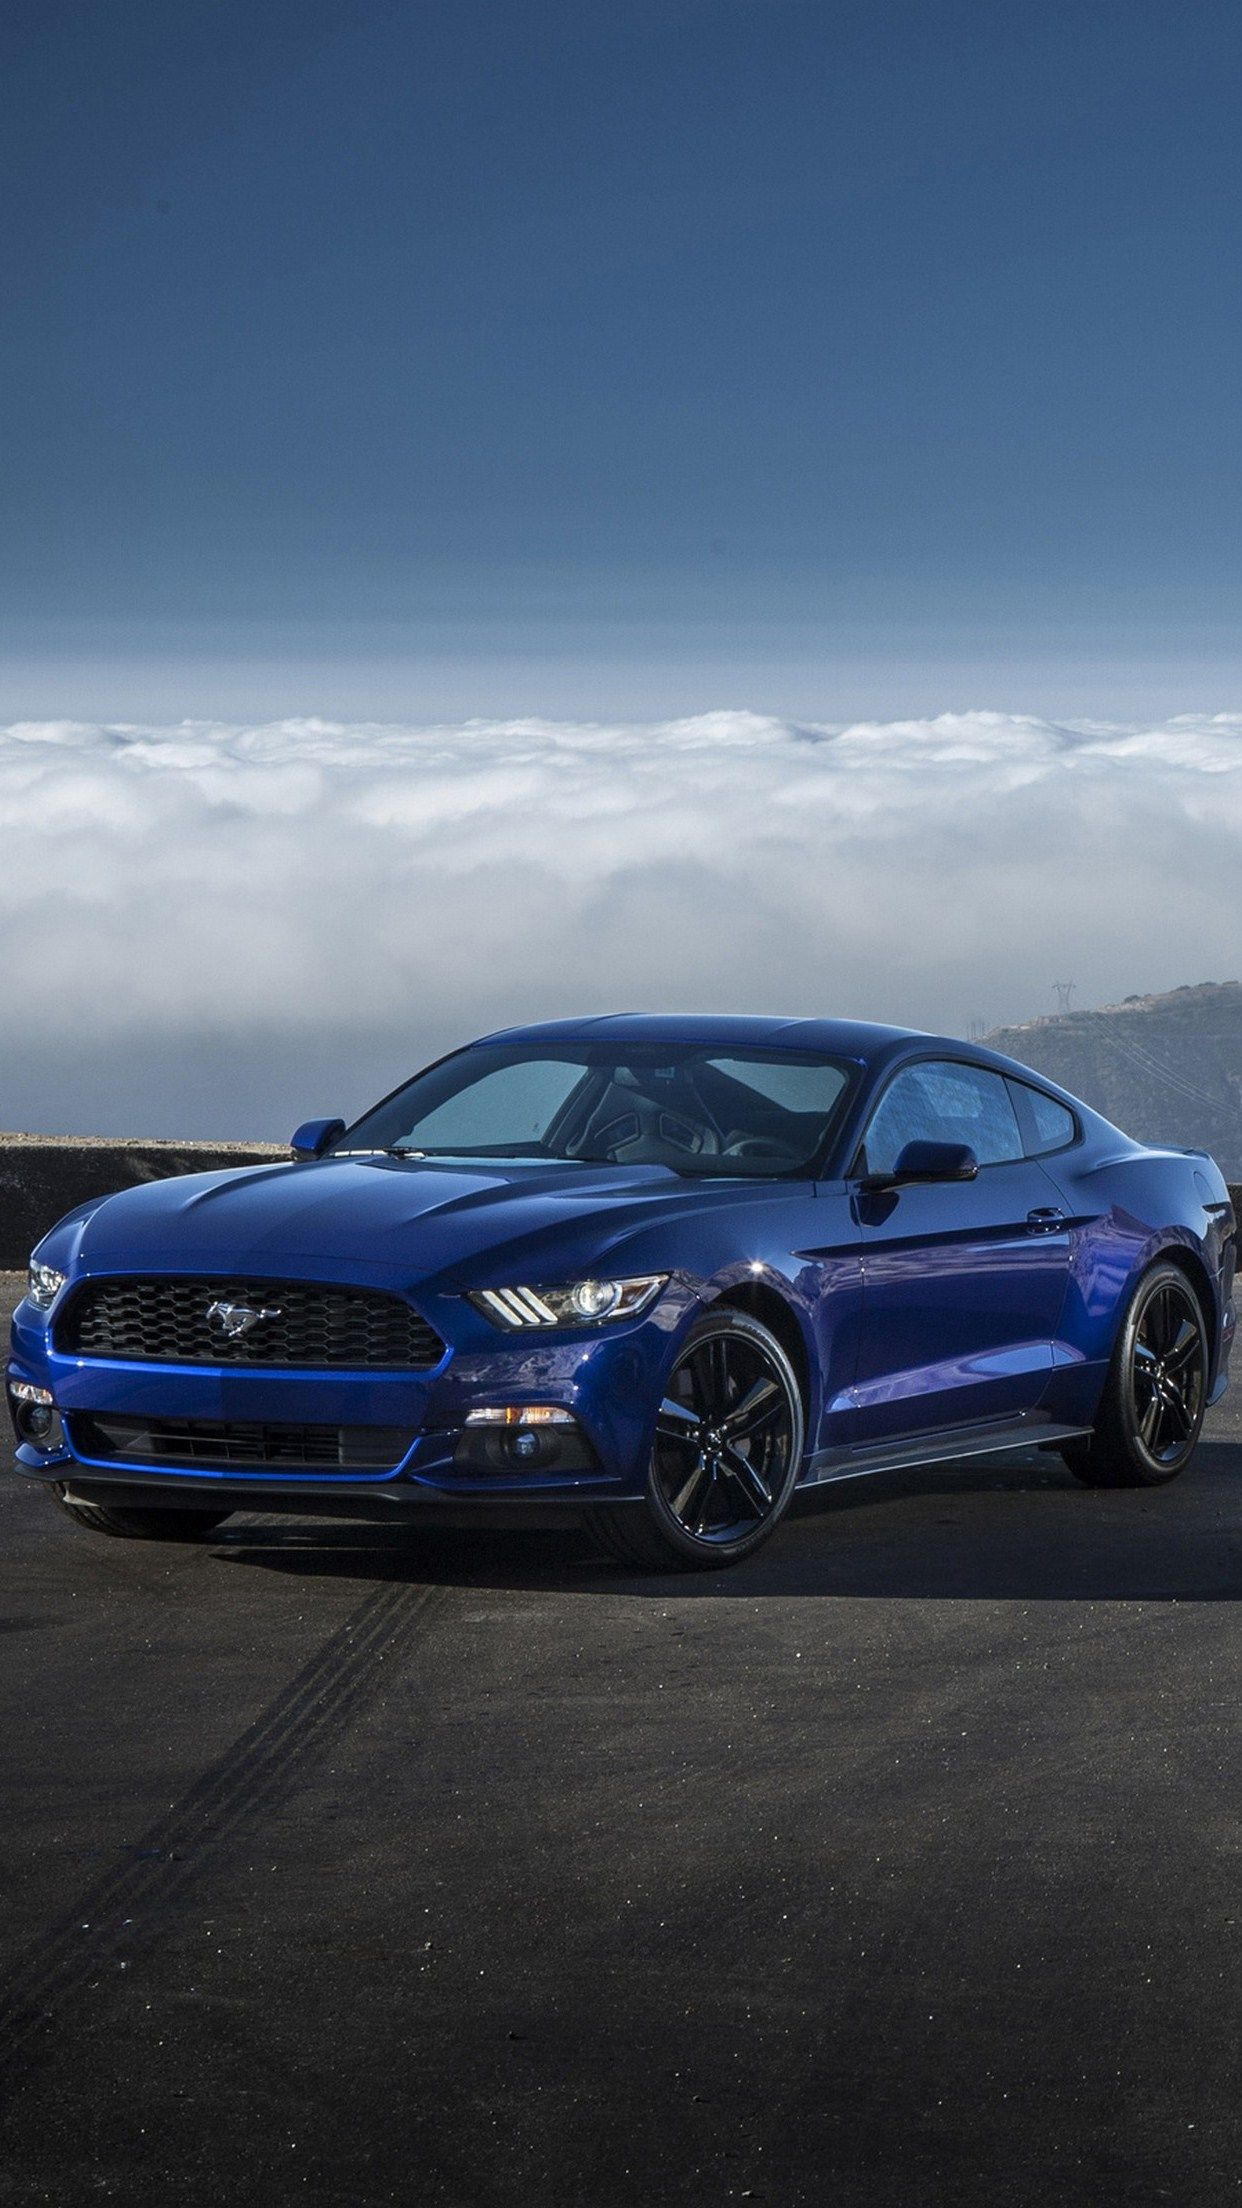 Image For Mustang Iphone Wallpaper Wide X9u3a Car Stuff Ford